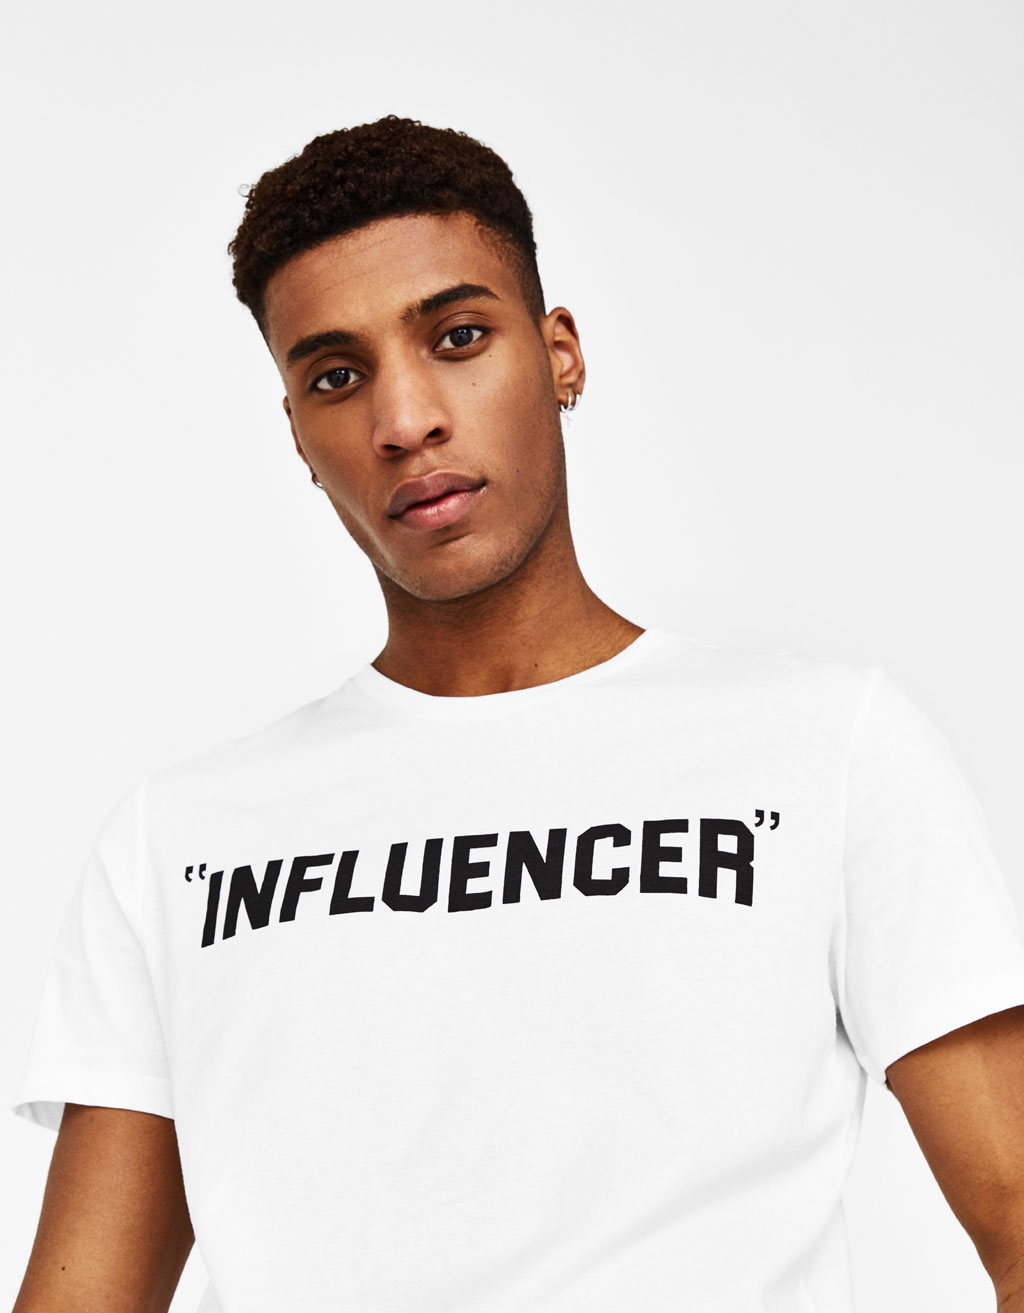 'INFLUENCER' T-shirt